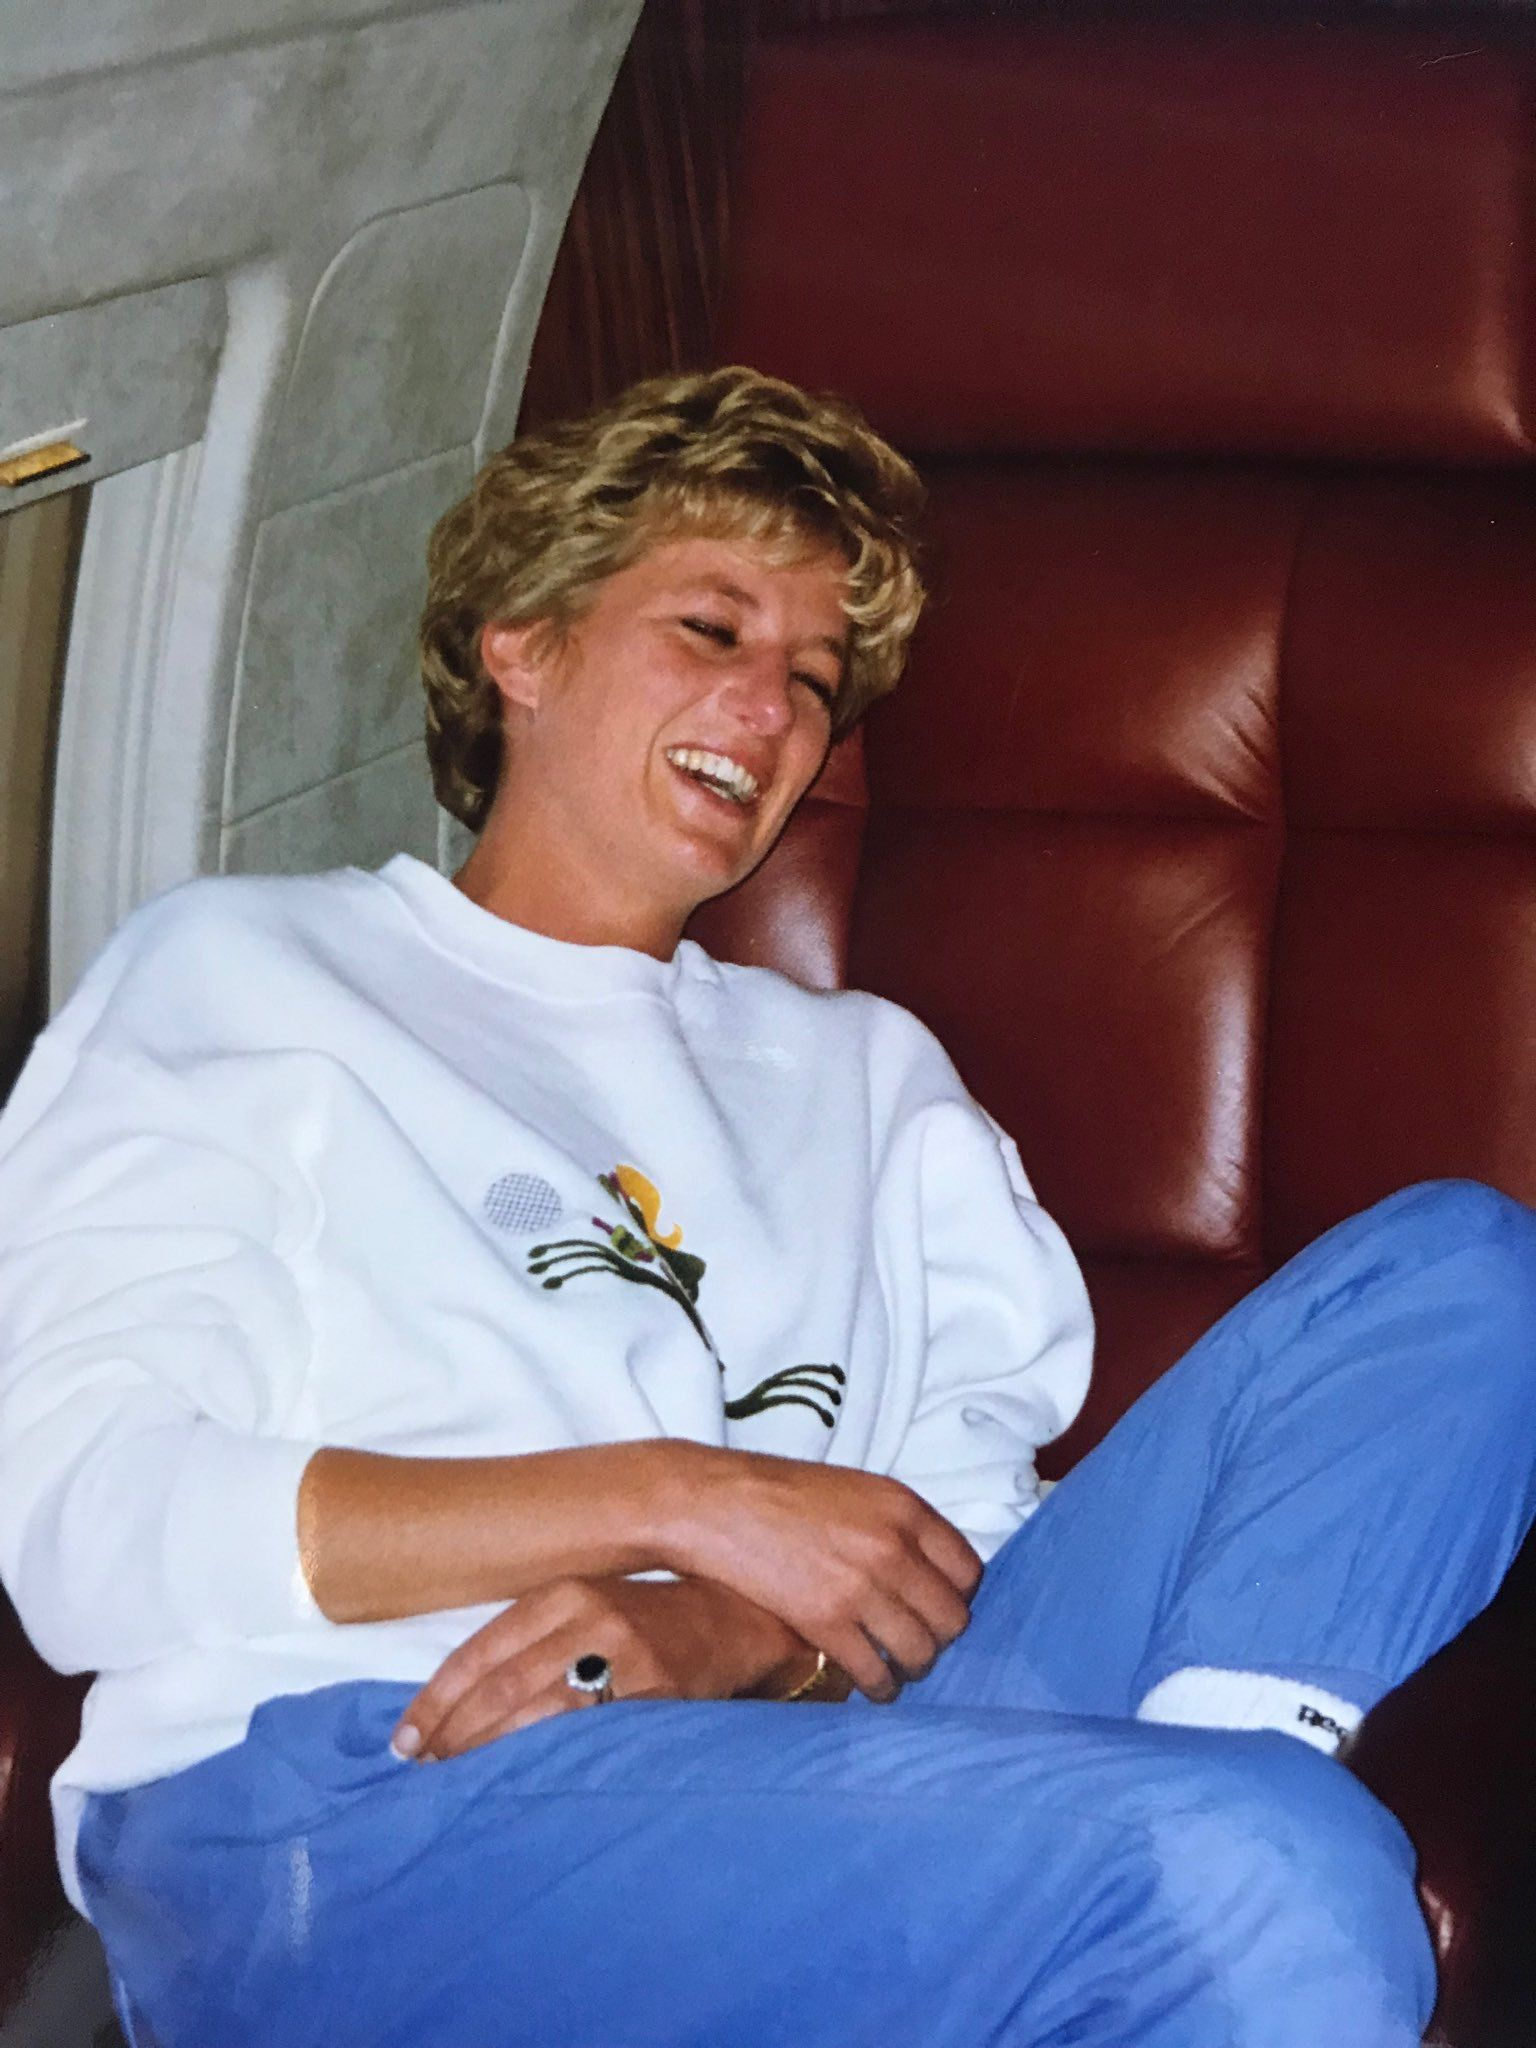 Diana, The People's Princess...she was so full of life